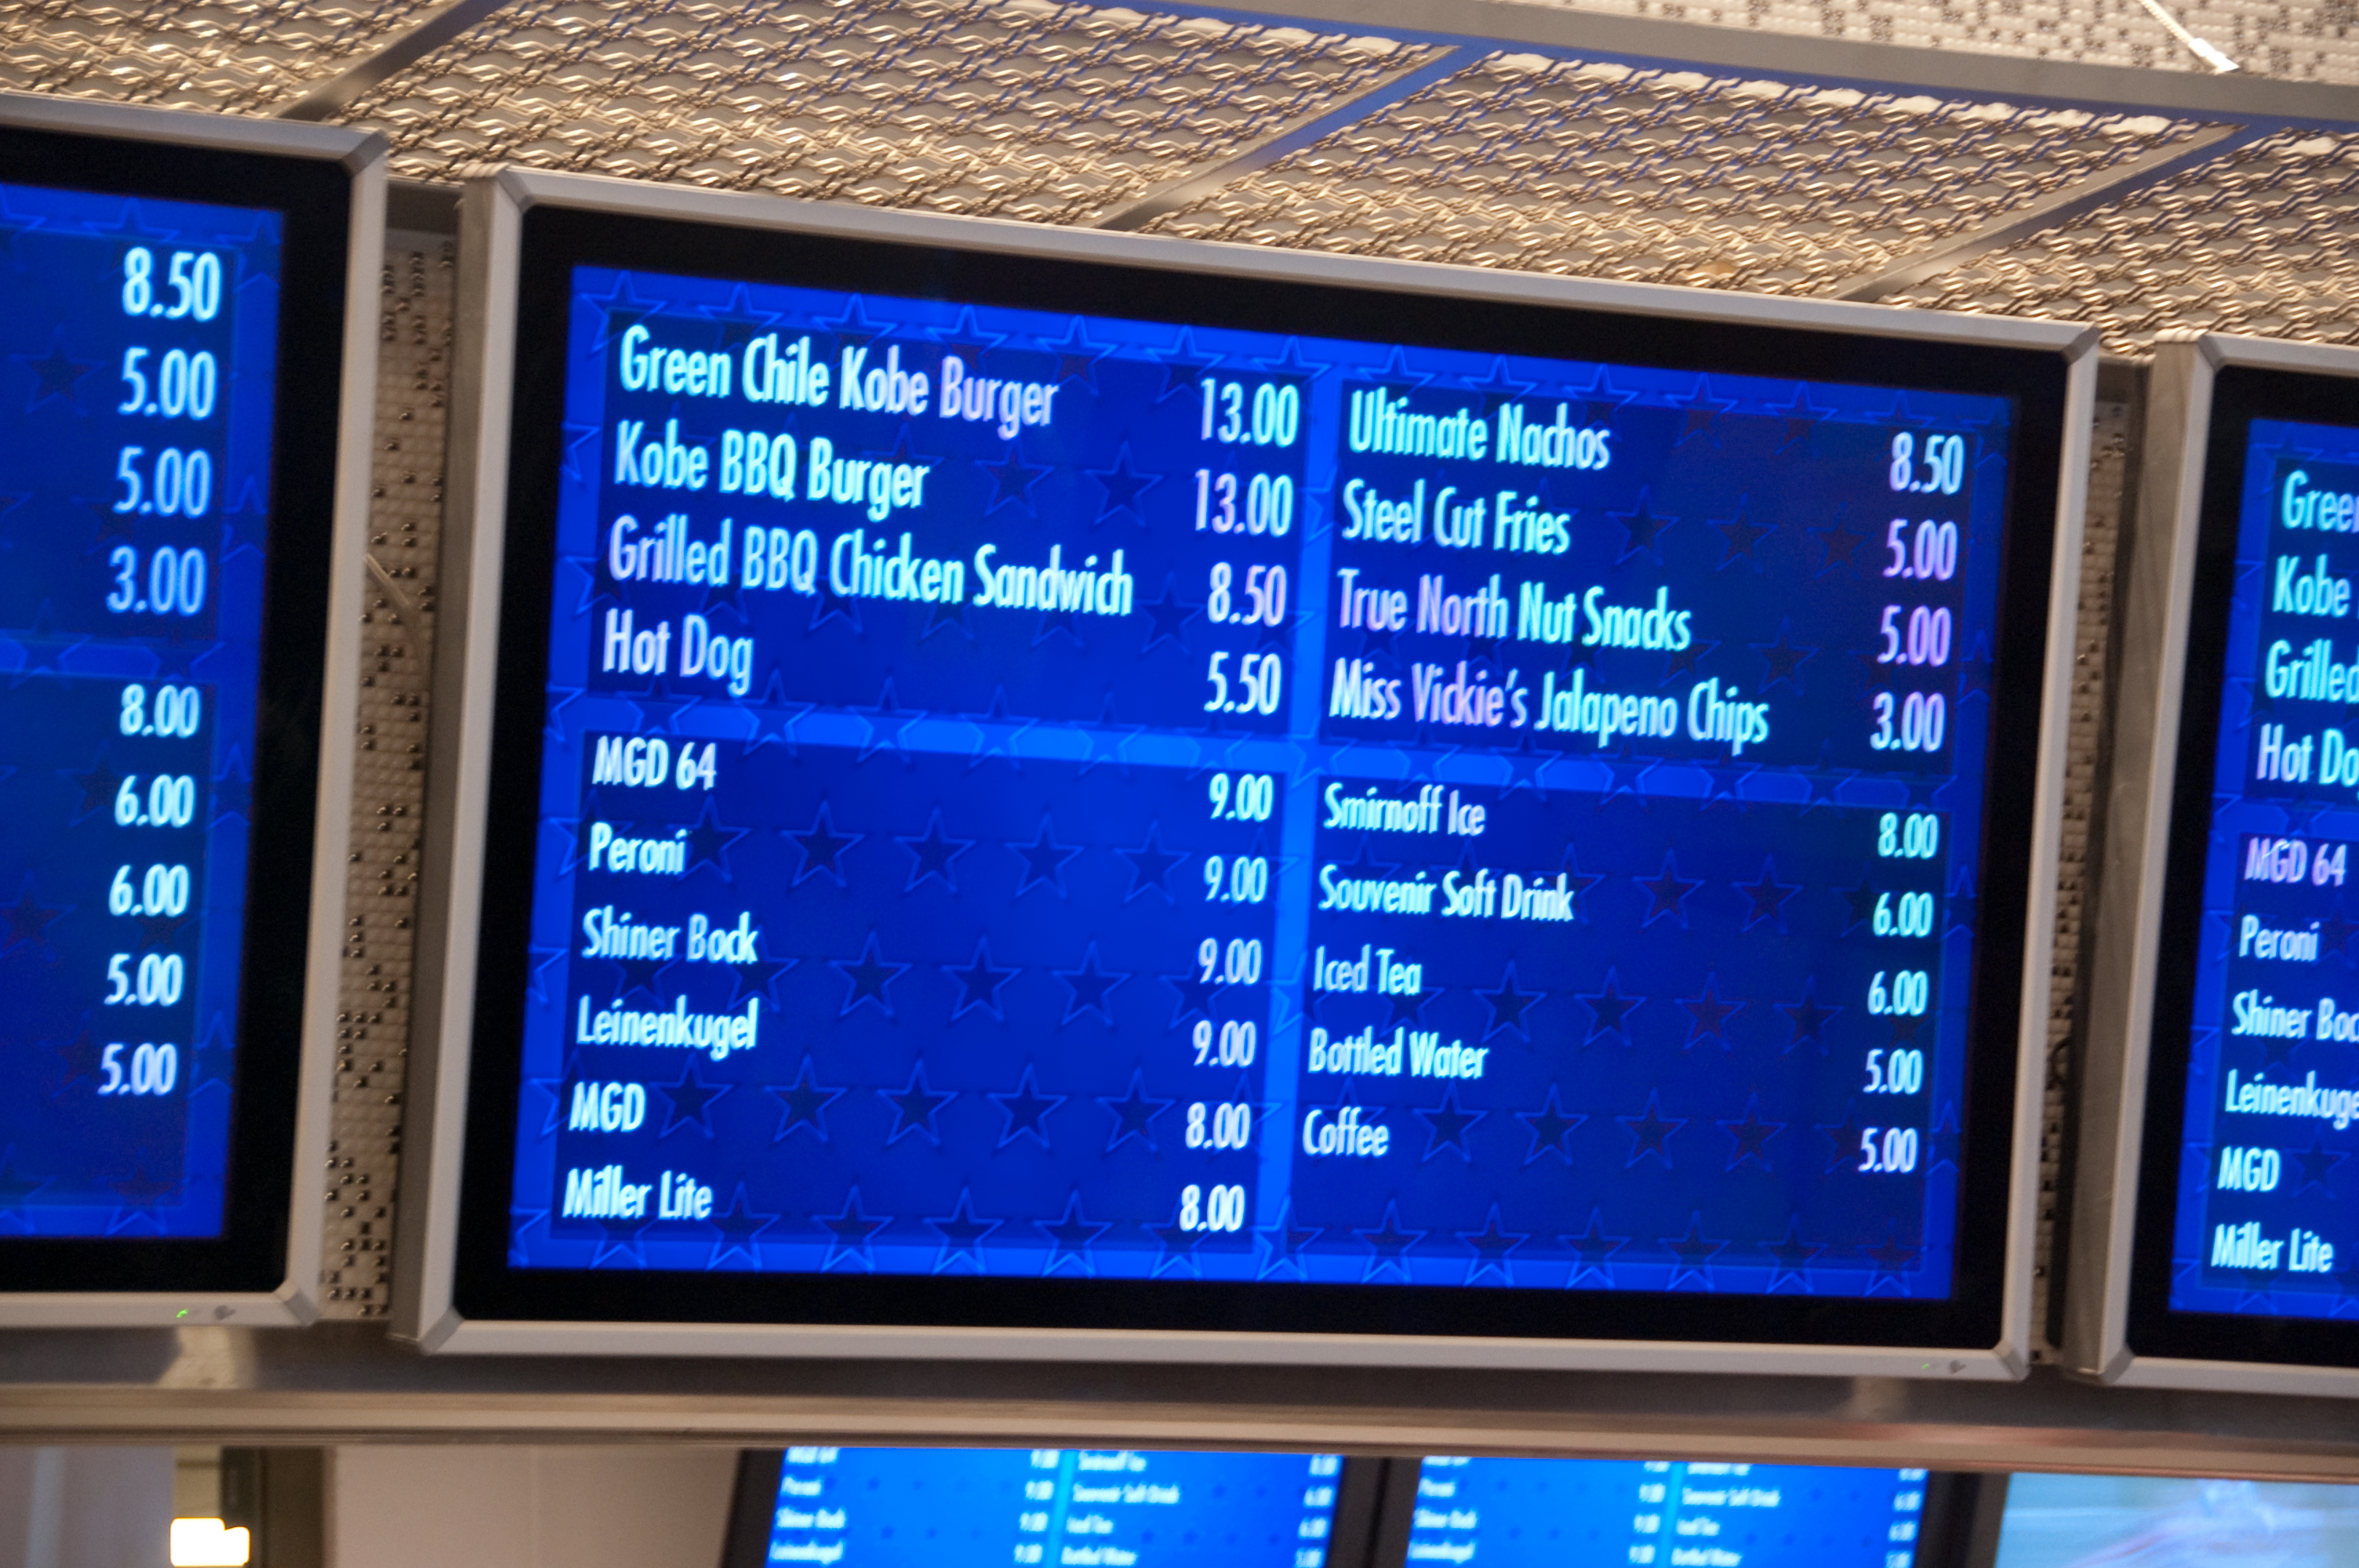 Food Prices At Tghe Archibald Hotel Prague